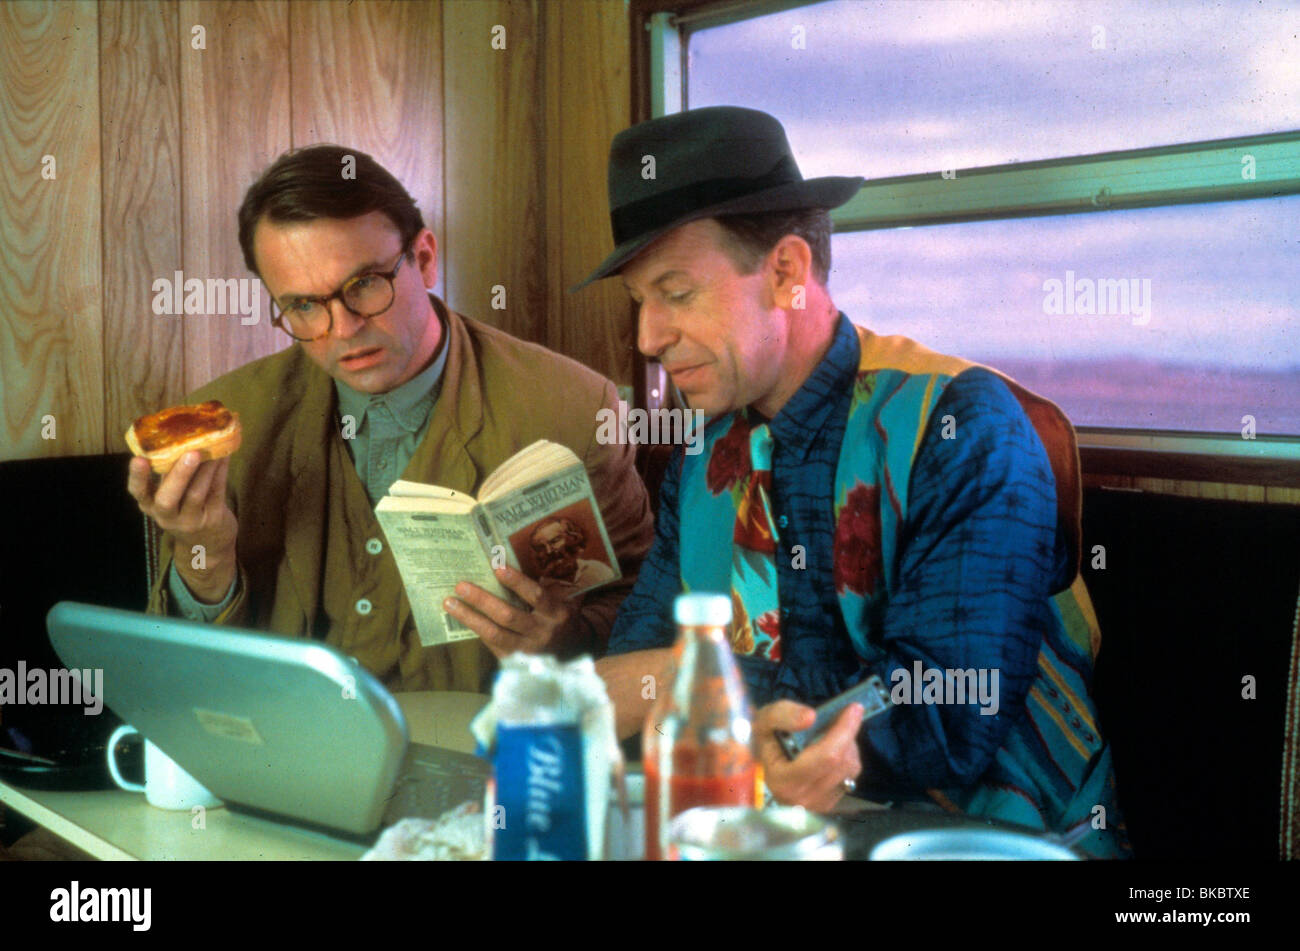 UNTIL THE END OF THE WORLD (1991) SAM NEILL UEOW 001 - Stock Image